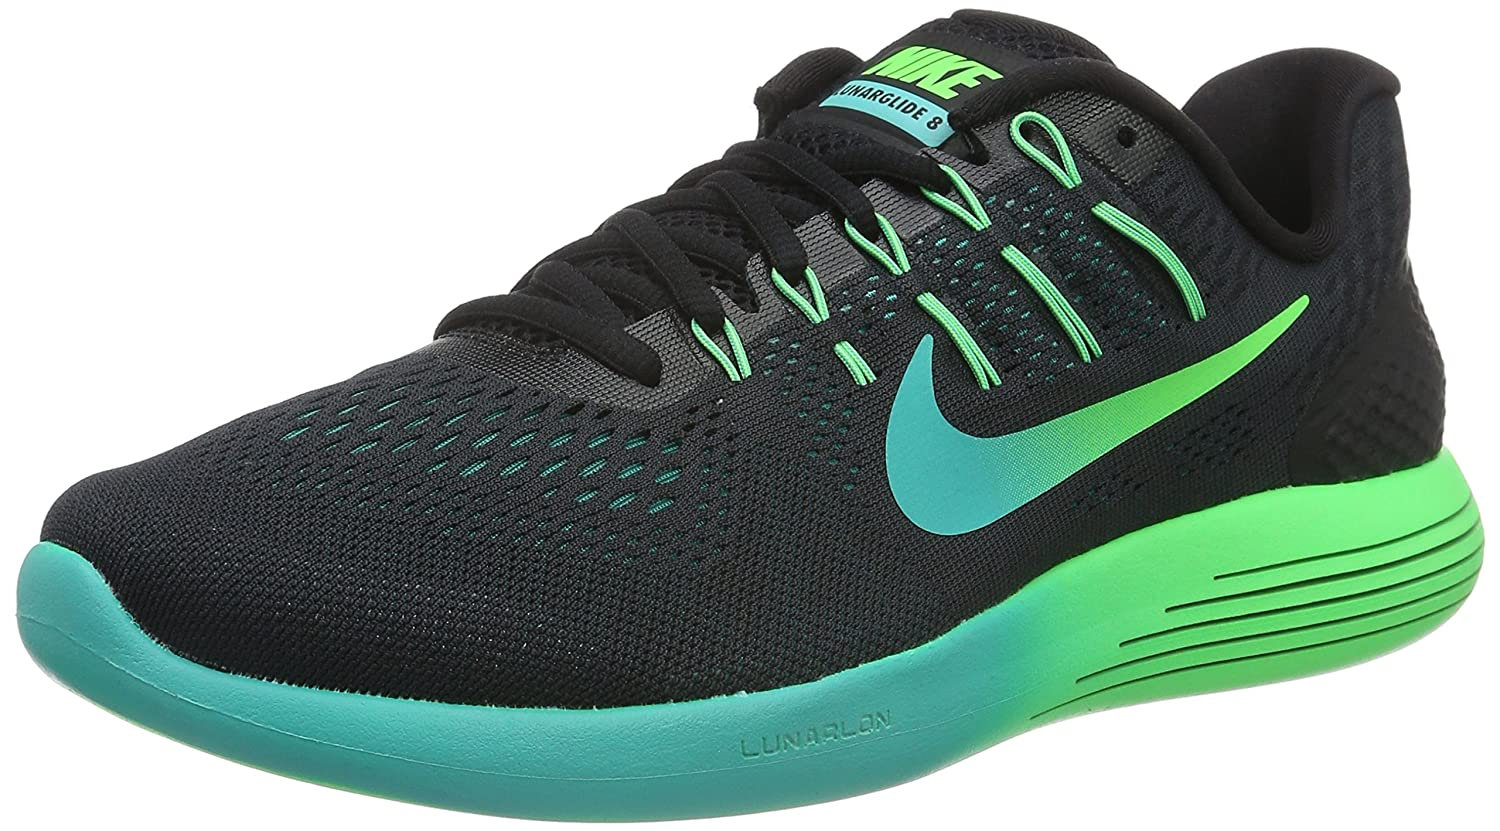 Nike Mens Lunarglide 8, Black / White - Anthracite B019DF4KM6 11 D(M) US|Black/Multi-color-rio Teal-clear Jade